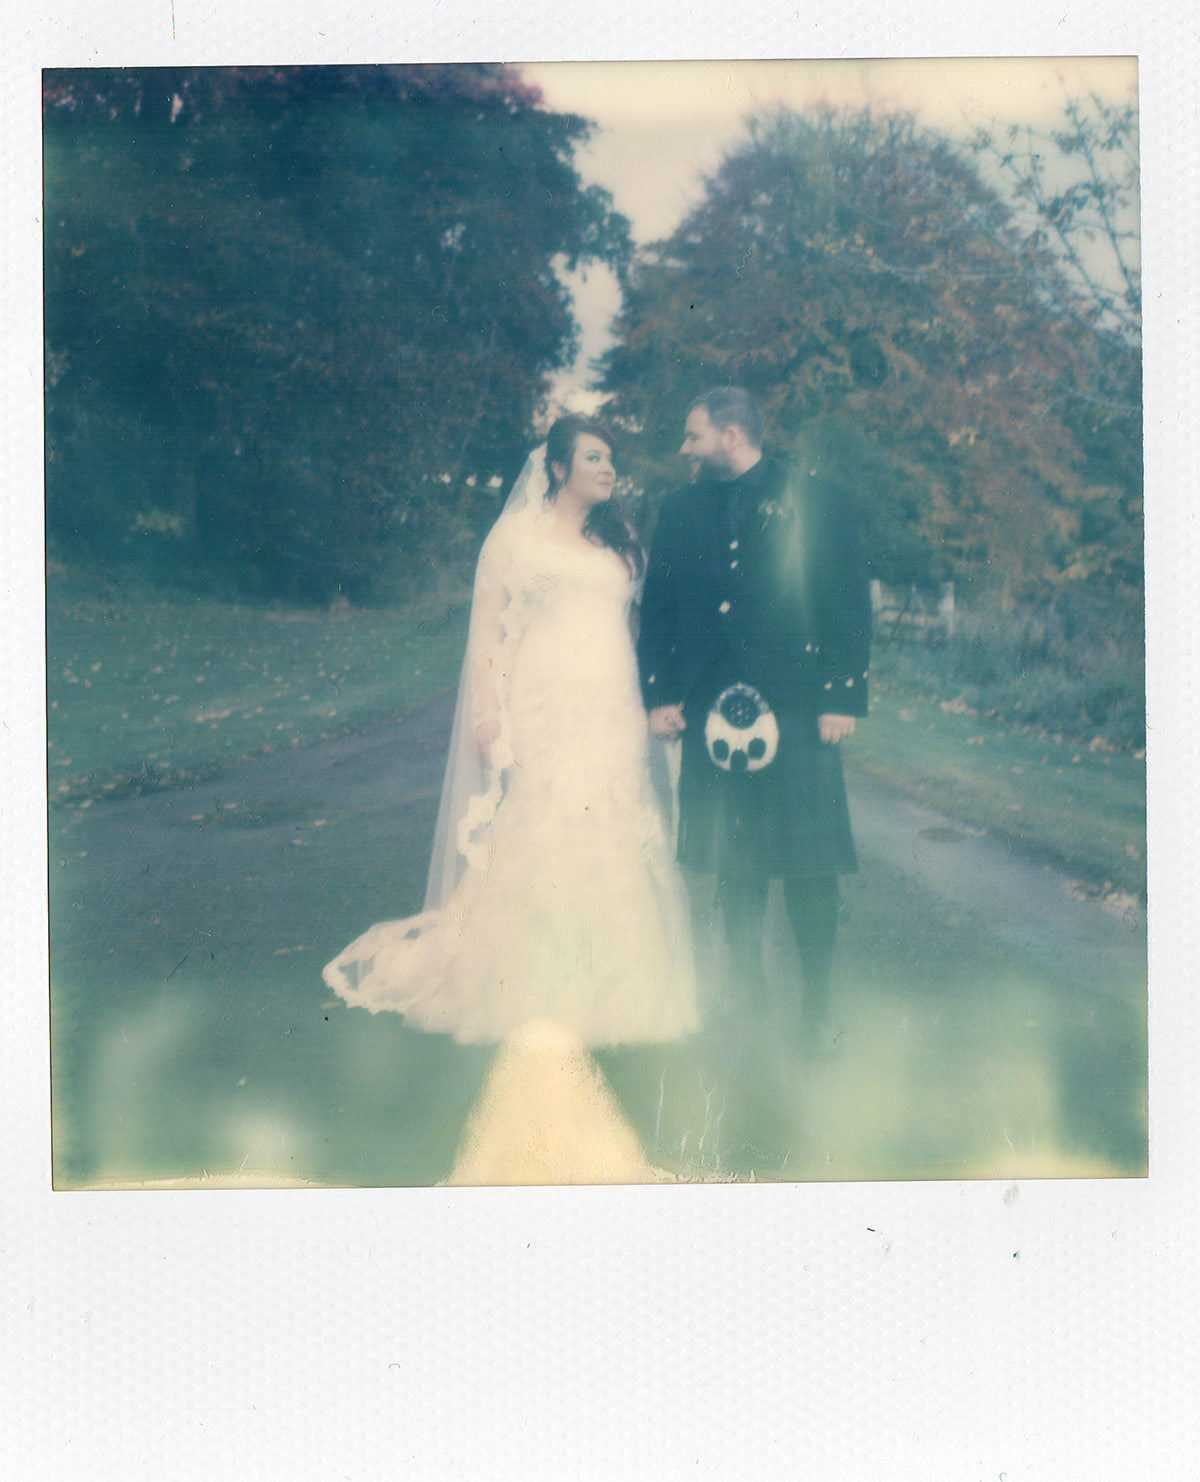 Impossible-Project-Polaroid-Film-Artistic-Quirky-Wedding-Photography-008